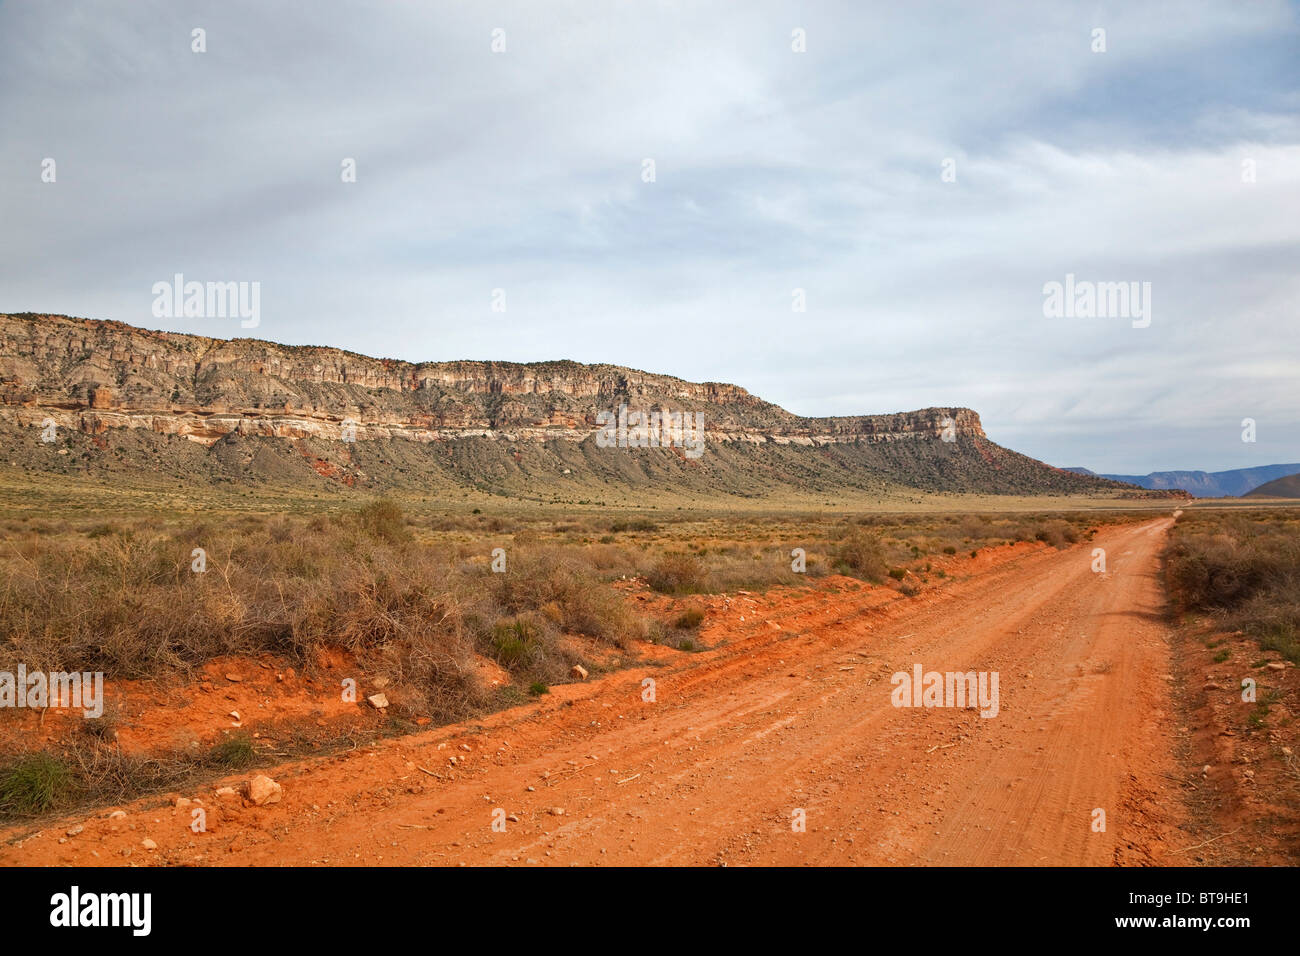 Offroad trail on the way to Toroweap Point at the Grand Canyon, Tuweep Area, North Rim, Arizona, USA - Stock Image